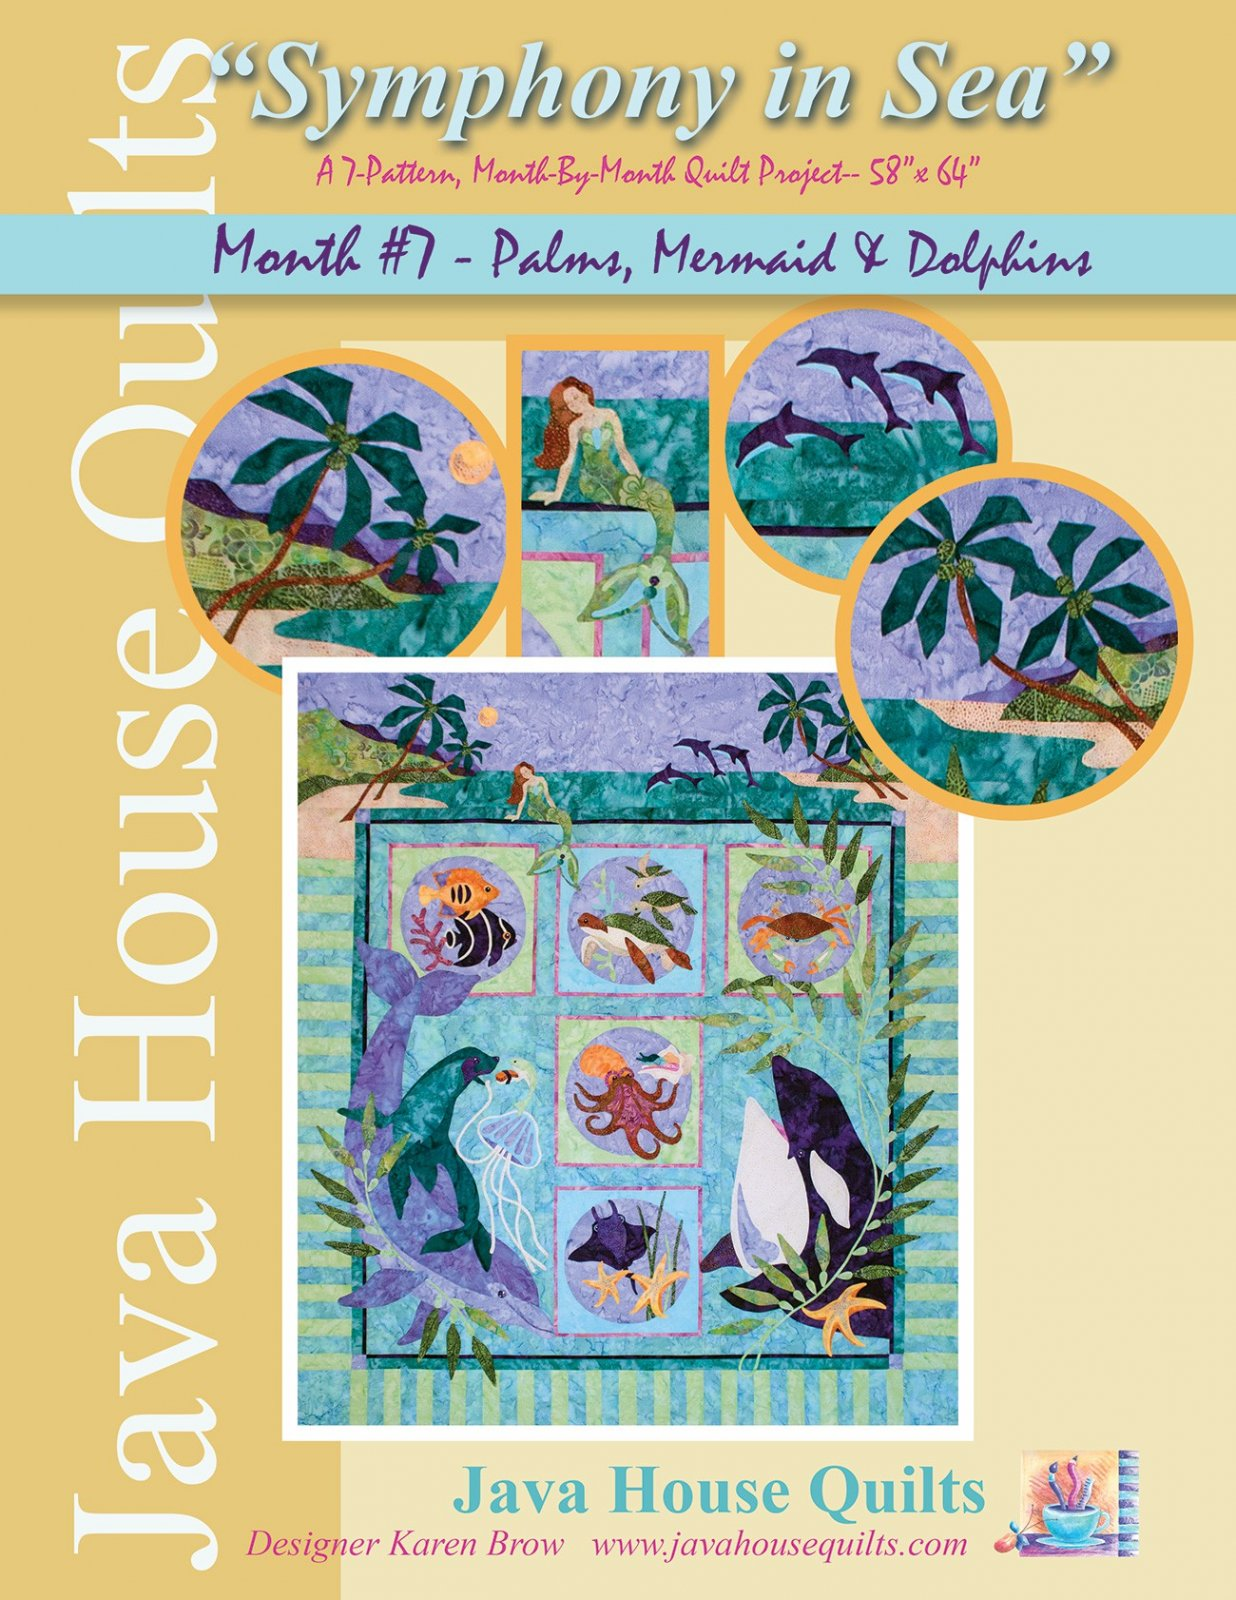 Symphony in Sea - Palms Mermaid & Dolphins Block 7